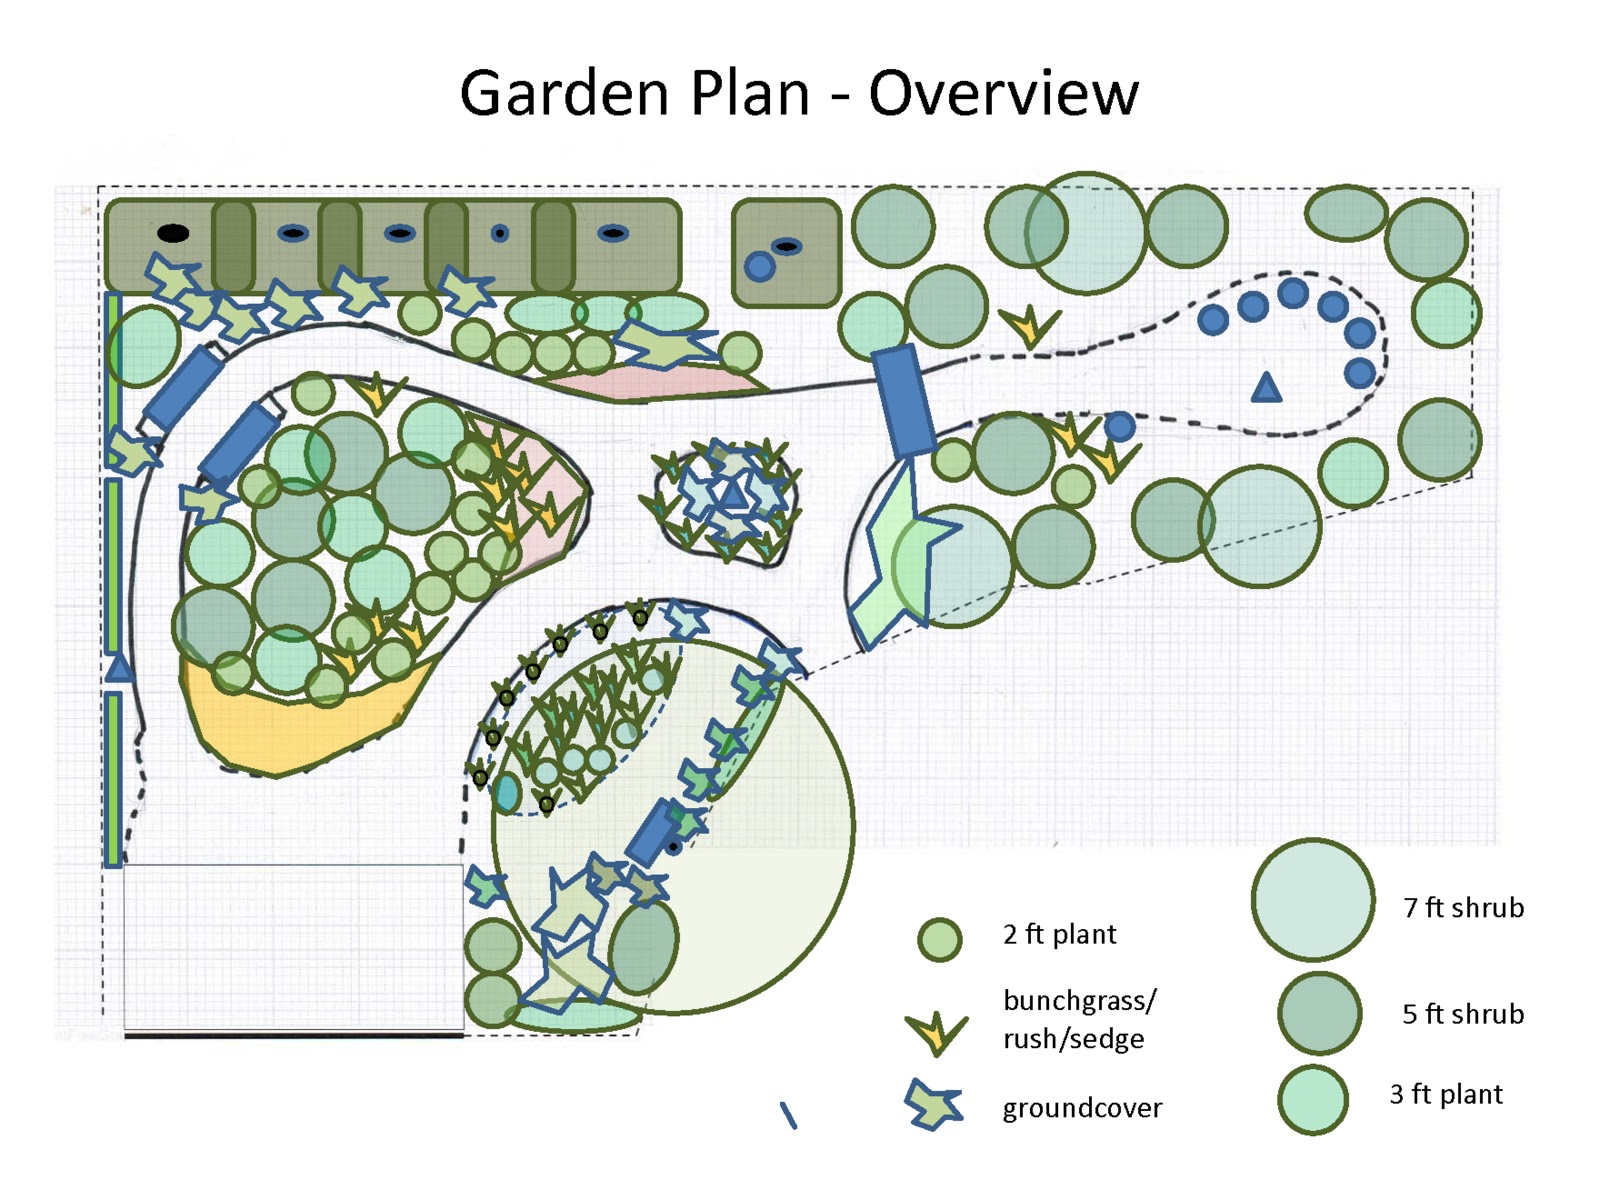 Butterfly garden plans zone 7 shade plants perennials for for Planting plans for small gardens